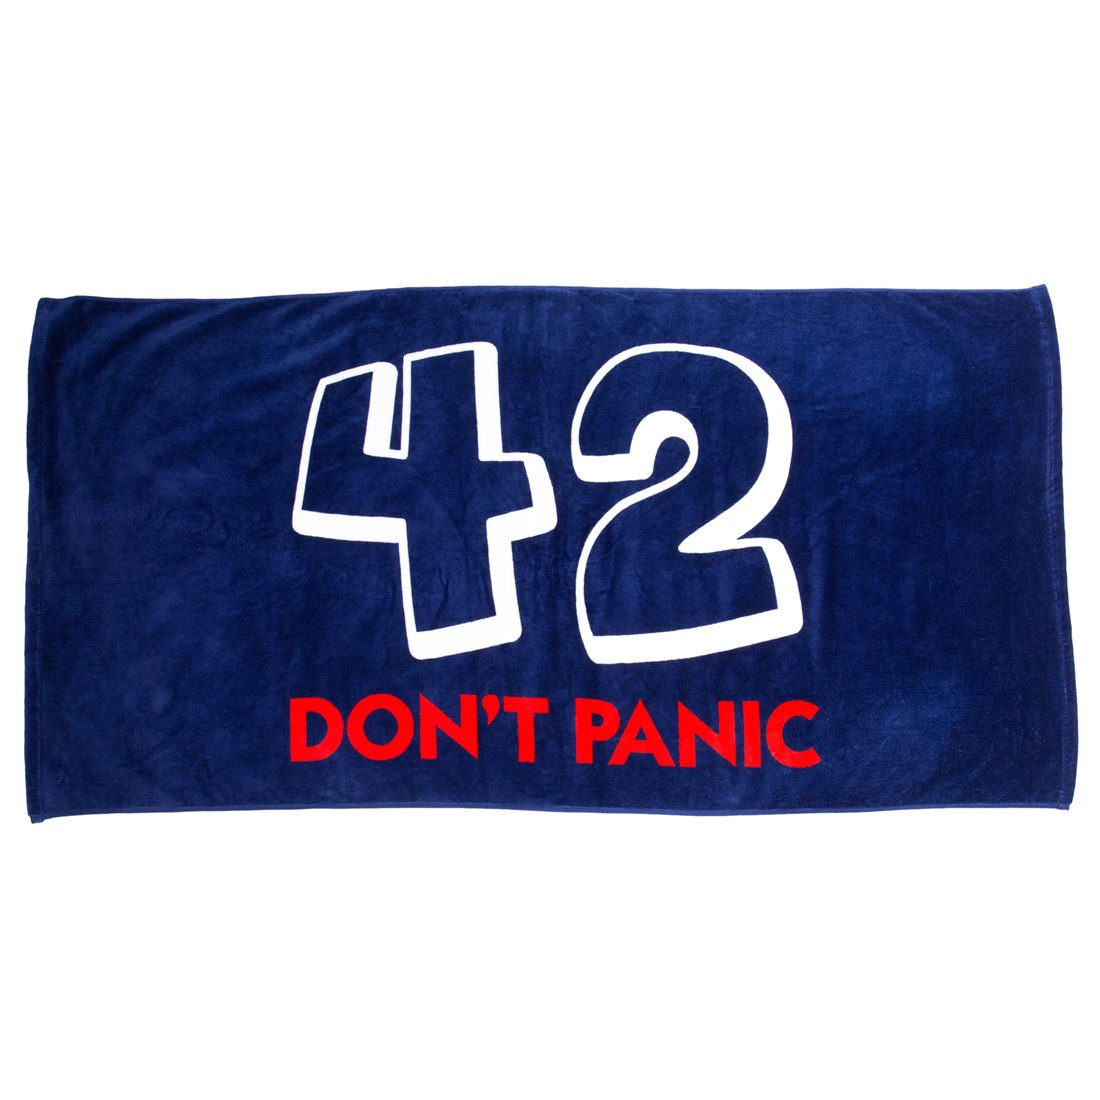 getDigital Bath & Beach Towel 42 Don't Panic - Essential for every hitchhiker in the galaxy - Blue, 100% Cotton, 55 by 28inch, certified by German textile standard